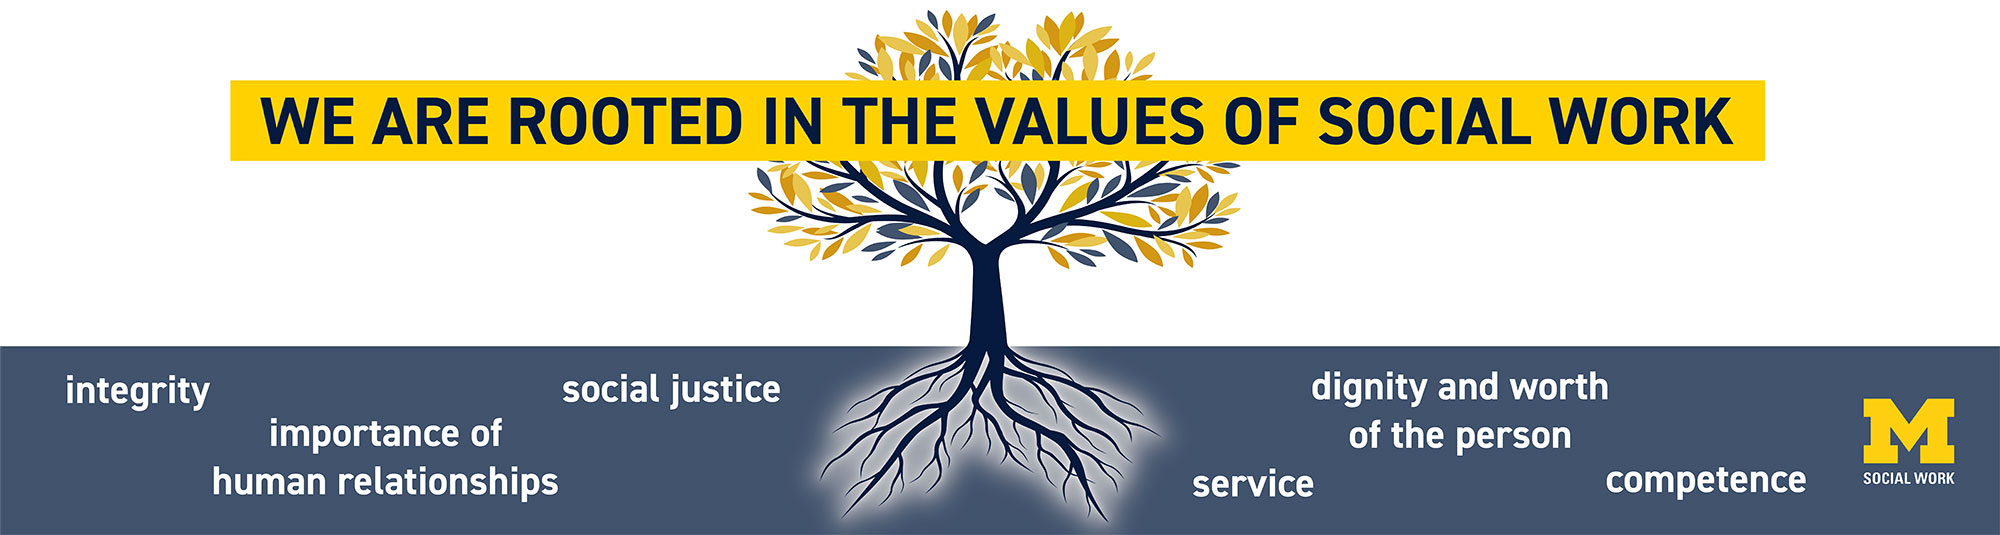 We are rooted in the values of Social Work.